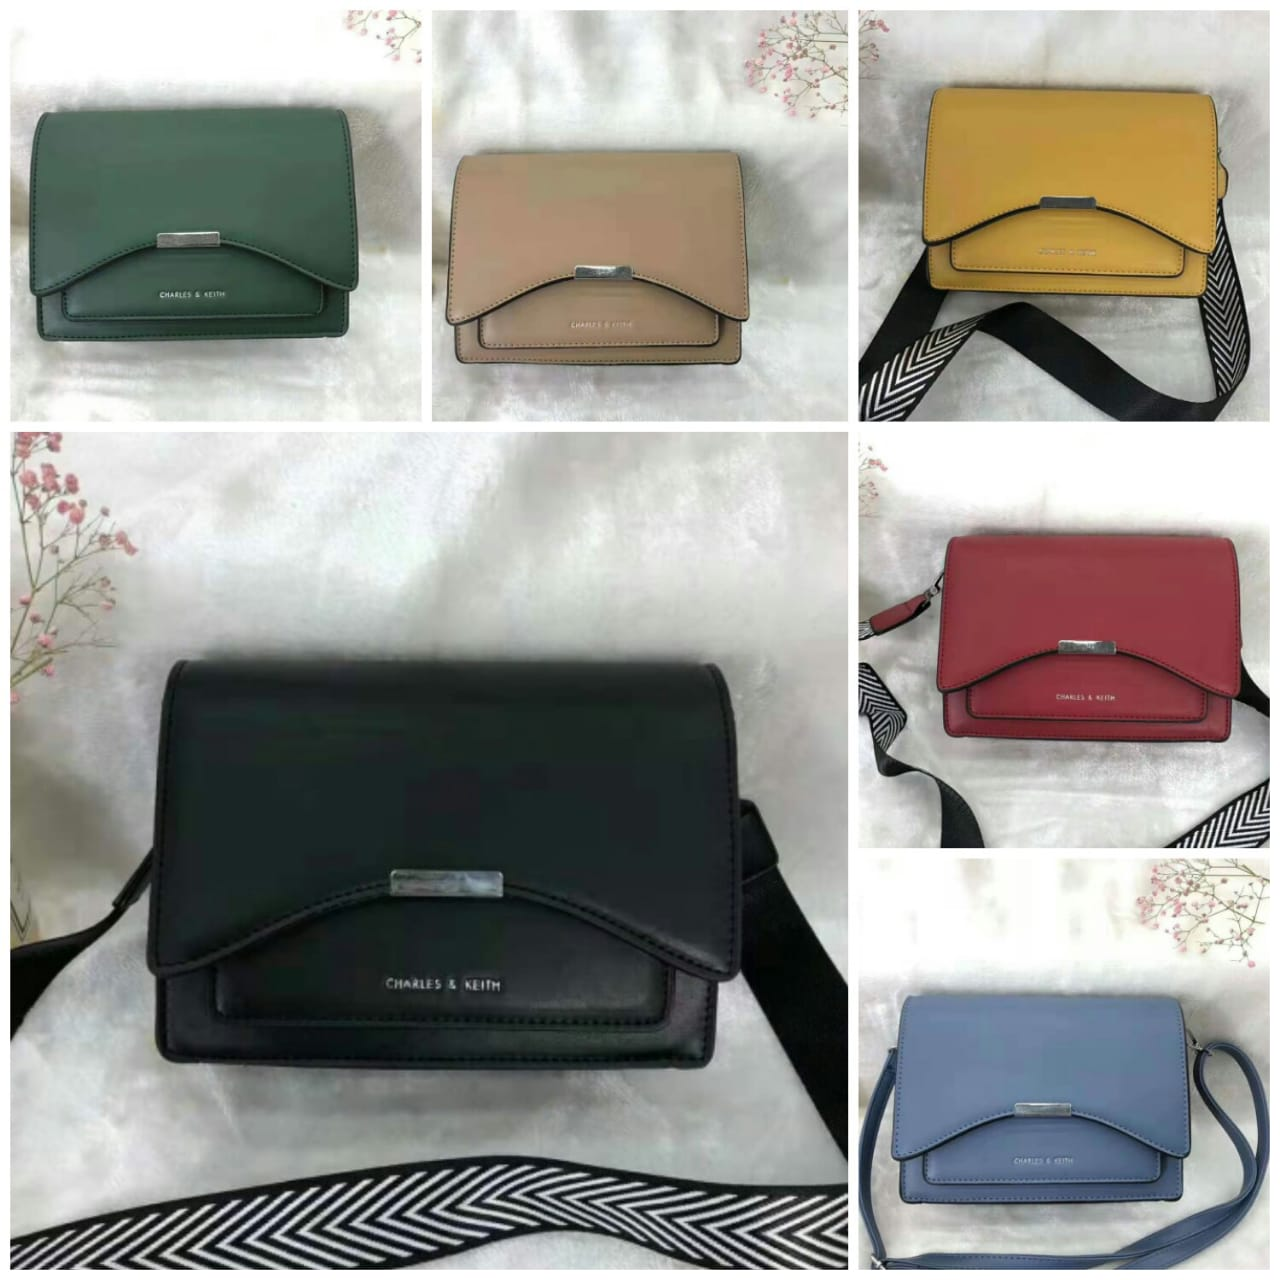 tas charles and keith original murah 2020 6062-1AJ , jual tas charles and keith, suplier tas charles and keith murah, jual charles and keith murah original